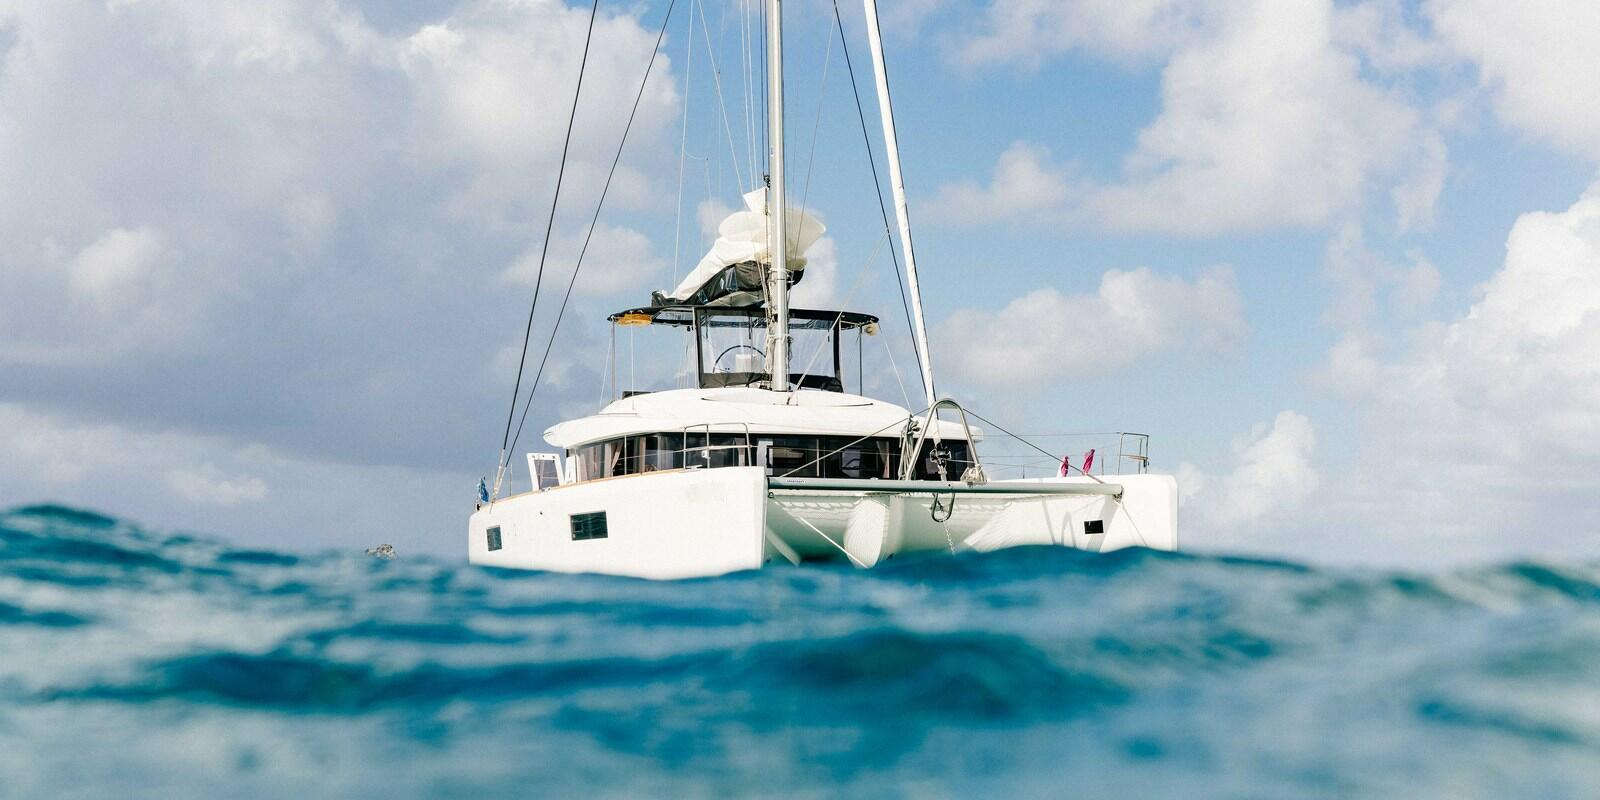 LUXURY cruising in the catamaran through the southern Caribbean - all inclusive